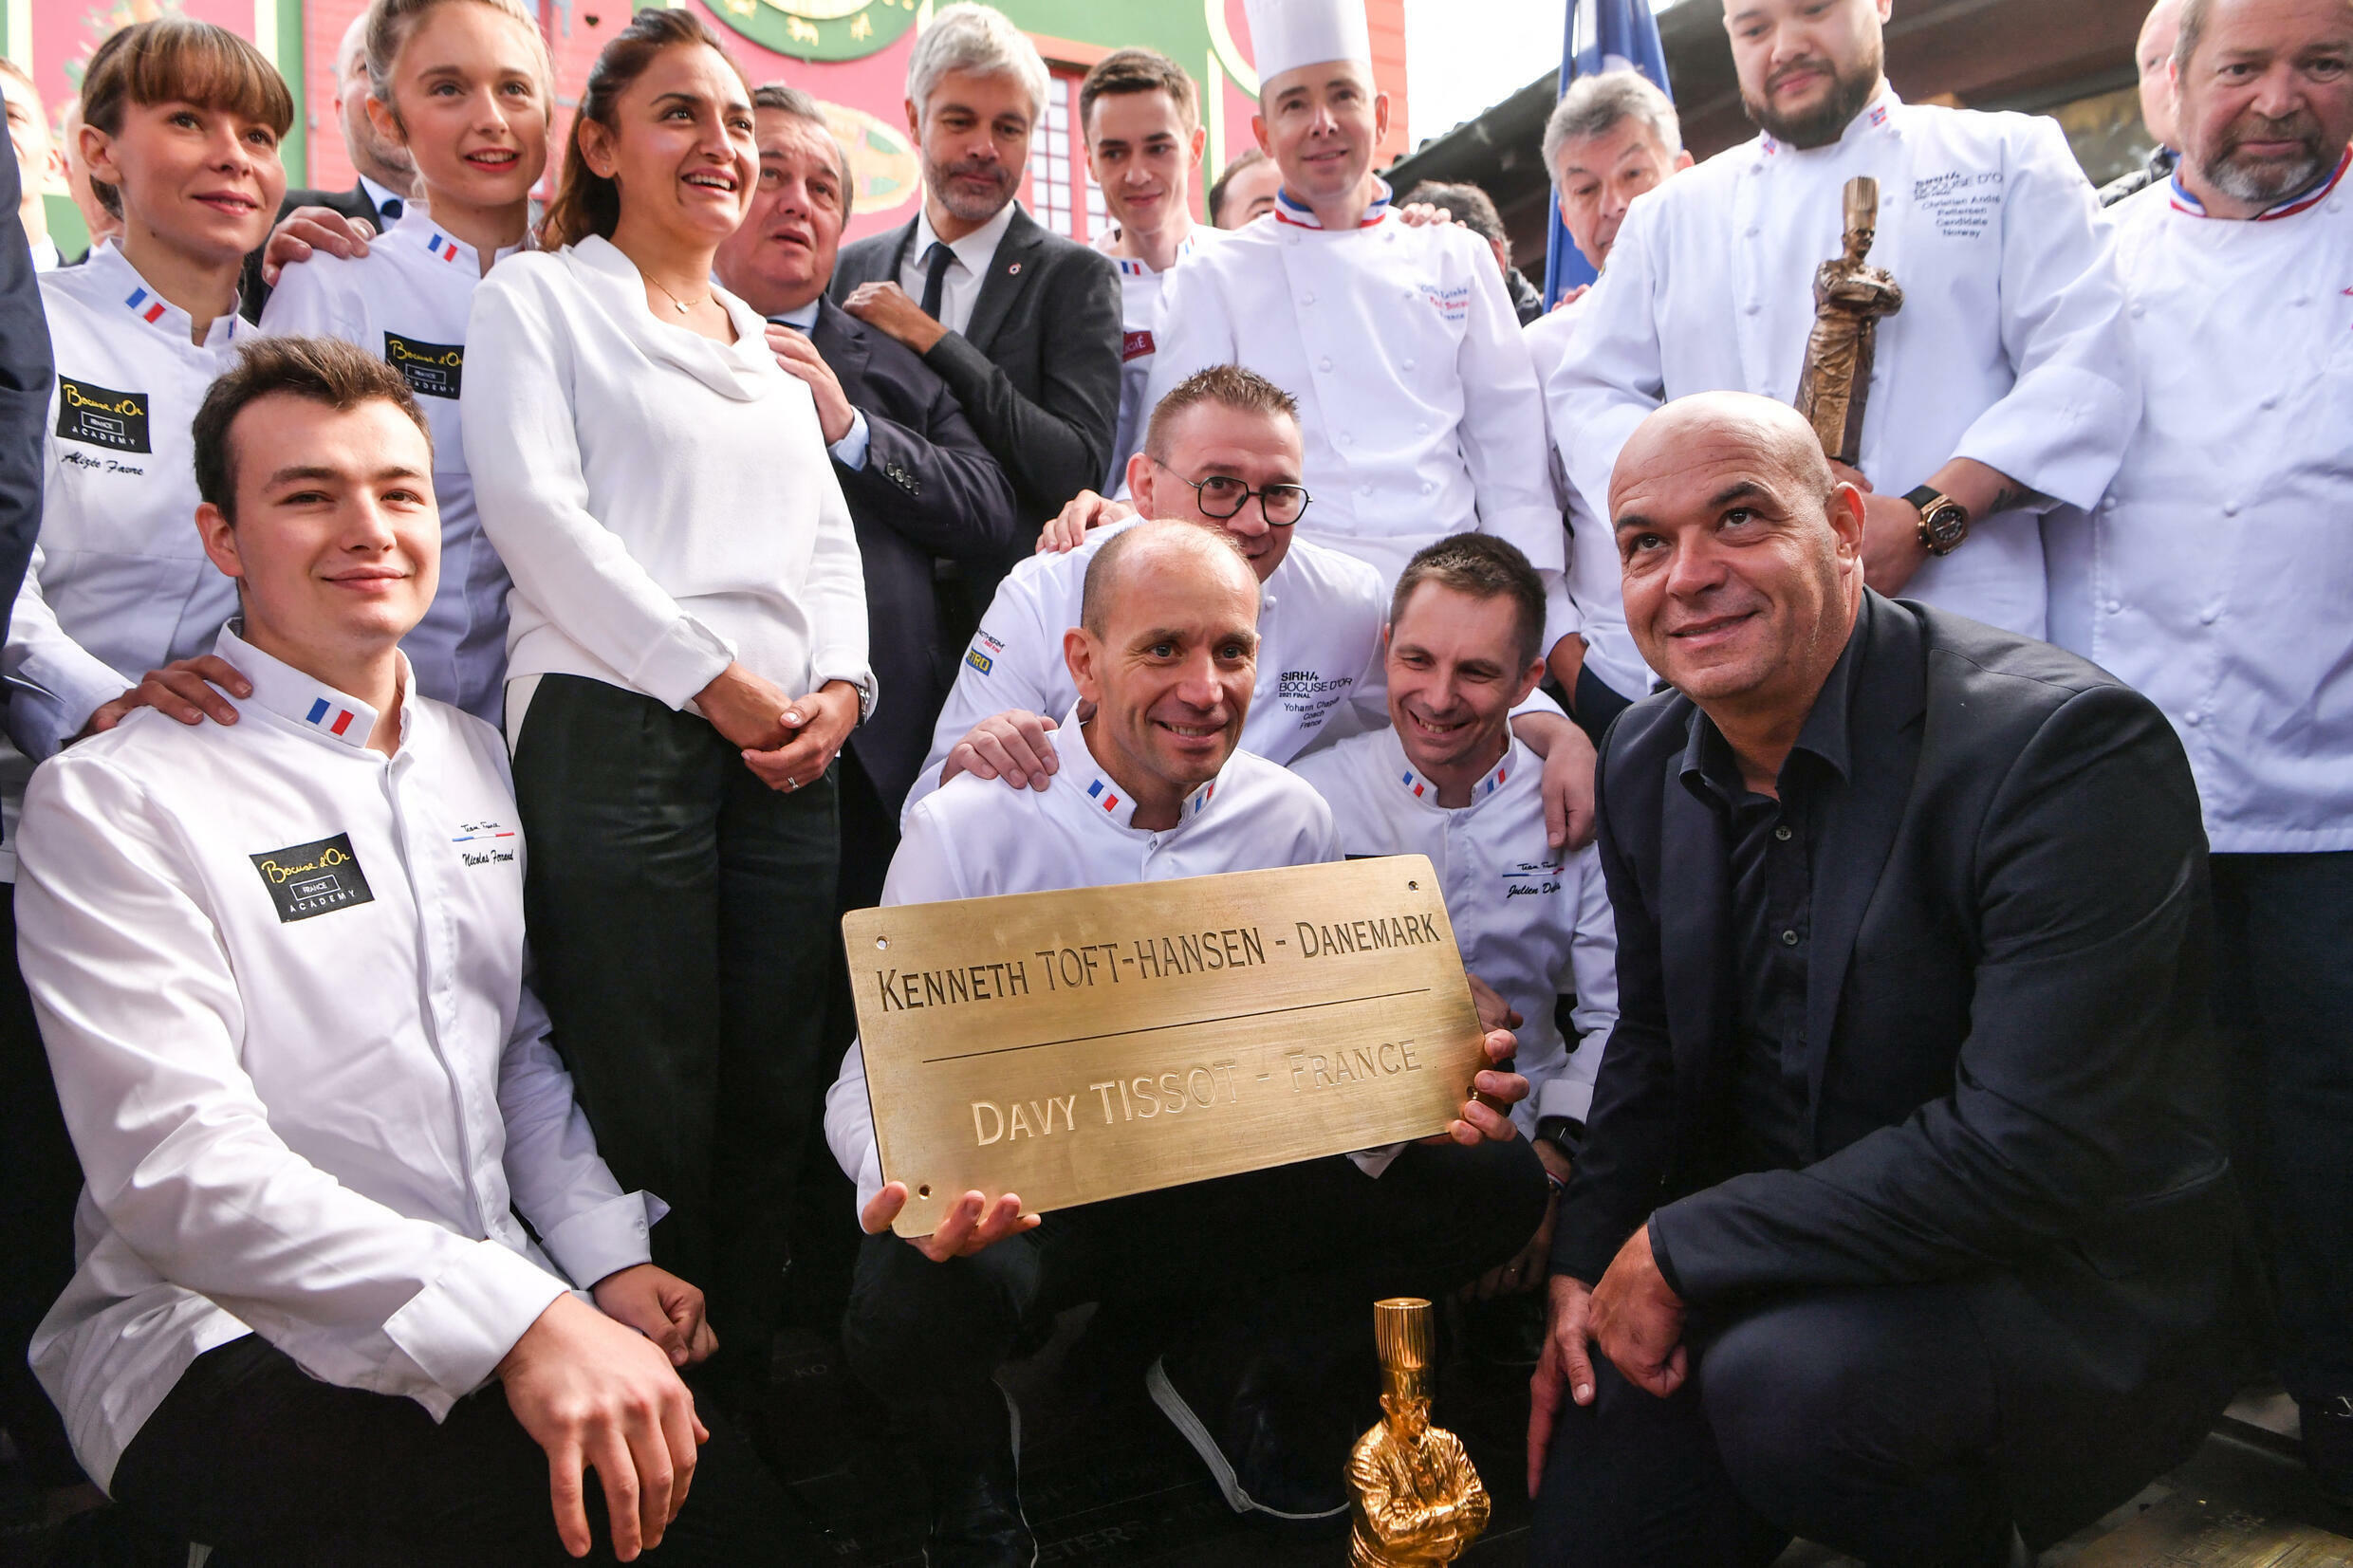 French chef Davy Tissot (C) holds a memorial plaque next to Jerome Bocuse (R down), son of famous French chef Paul Bocuse and members of his team, after winning the Bocuse d'Or 2021 international food award, in Collonges-au-Mont-d'Or on 28 September, 2021.